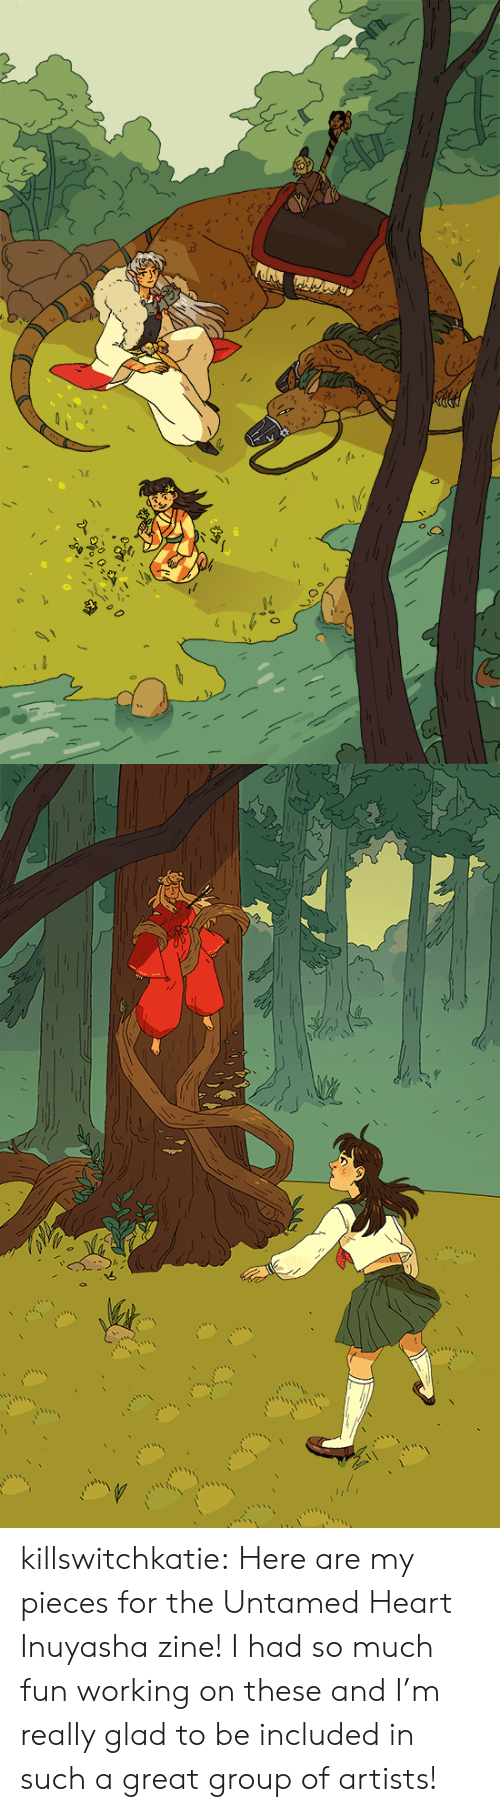 Target, Tumblr, and Blog: killswitchkatie: Here are my pieces for the Untamed Heart Inuyasha zine! I had so much fun working on these and I'm really glad to be included in such a great group of artists!